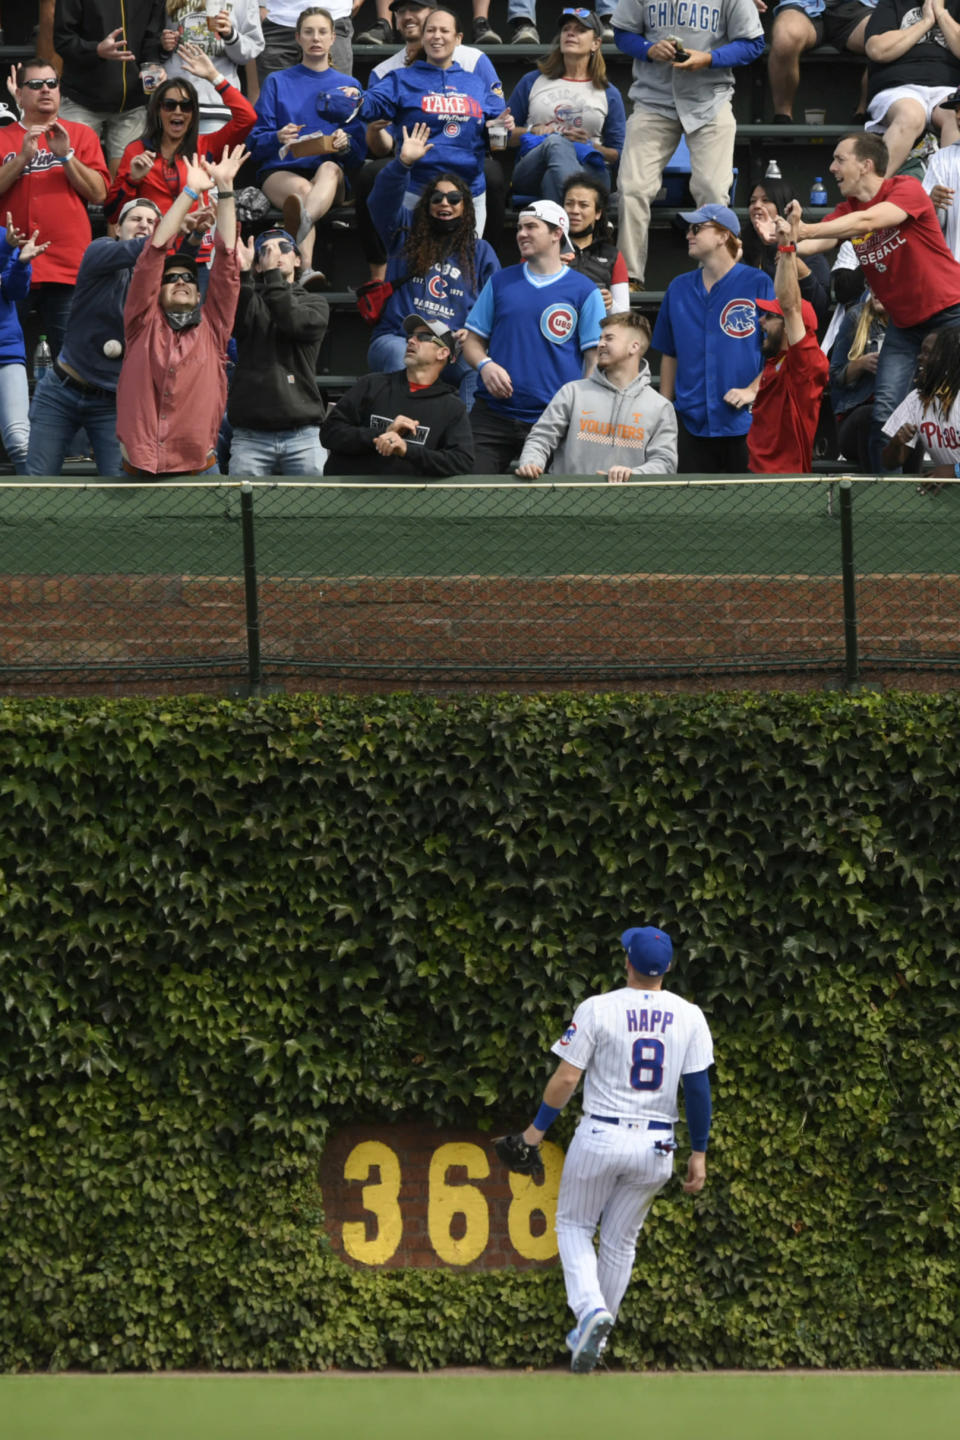 Chicago Cubs outfielder Ian Happ watches St. Louis Cardinals' Harrison Bader's solo home run during the second inning of a baseball game Saturday, Sept. 25, 2021. (AP Photo/Paul Beaty)